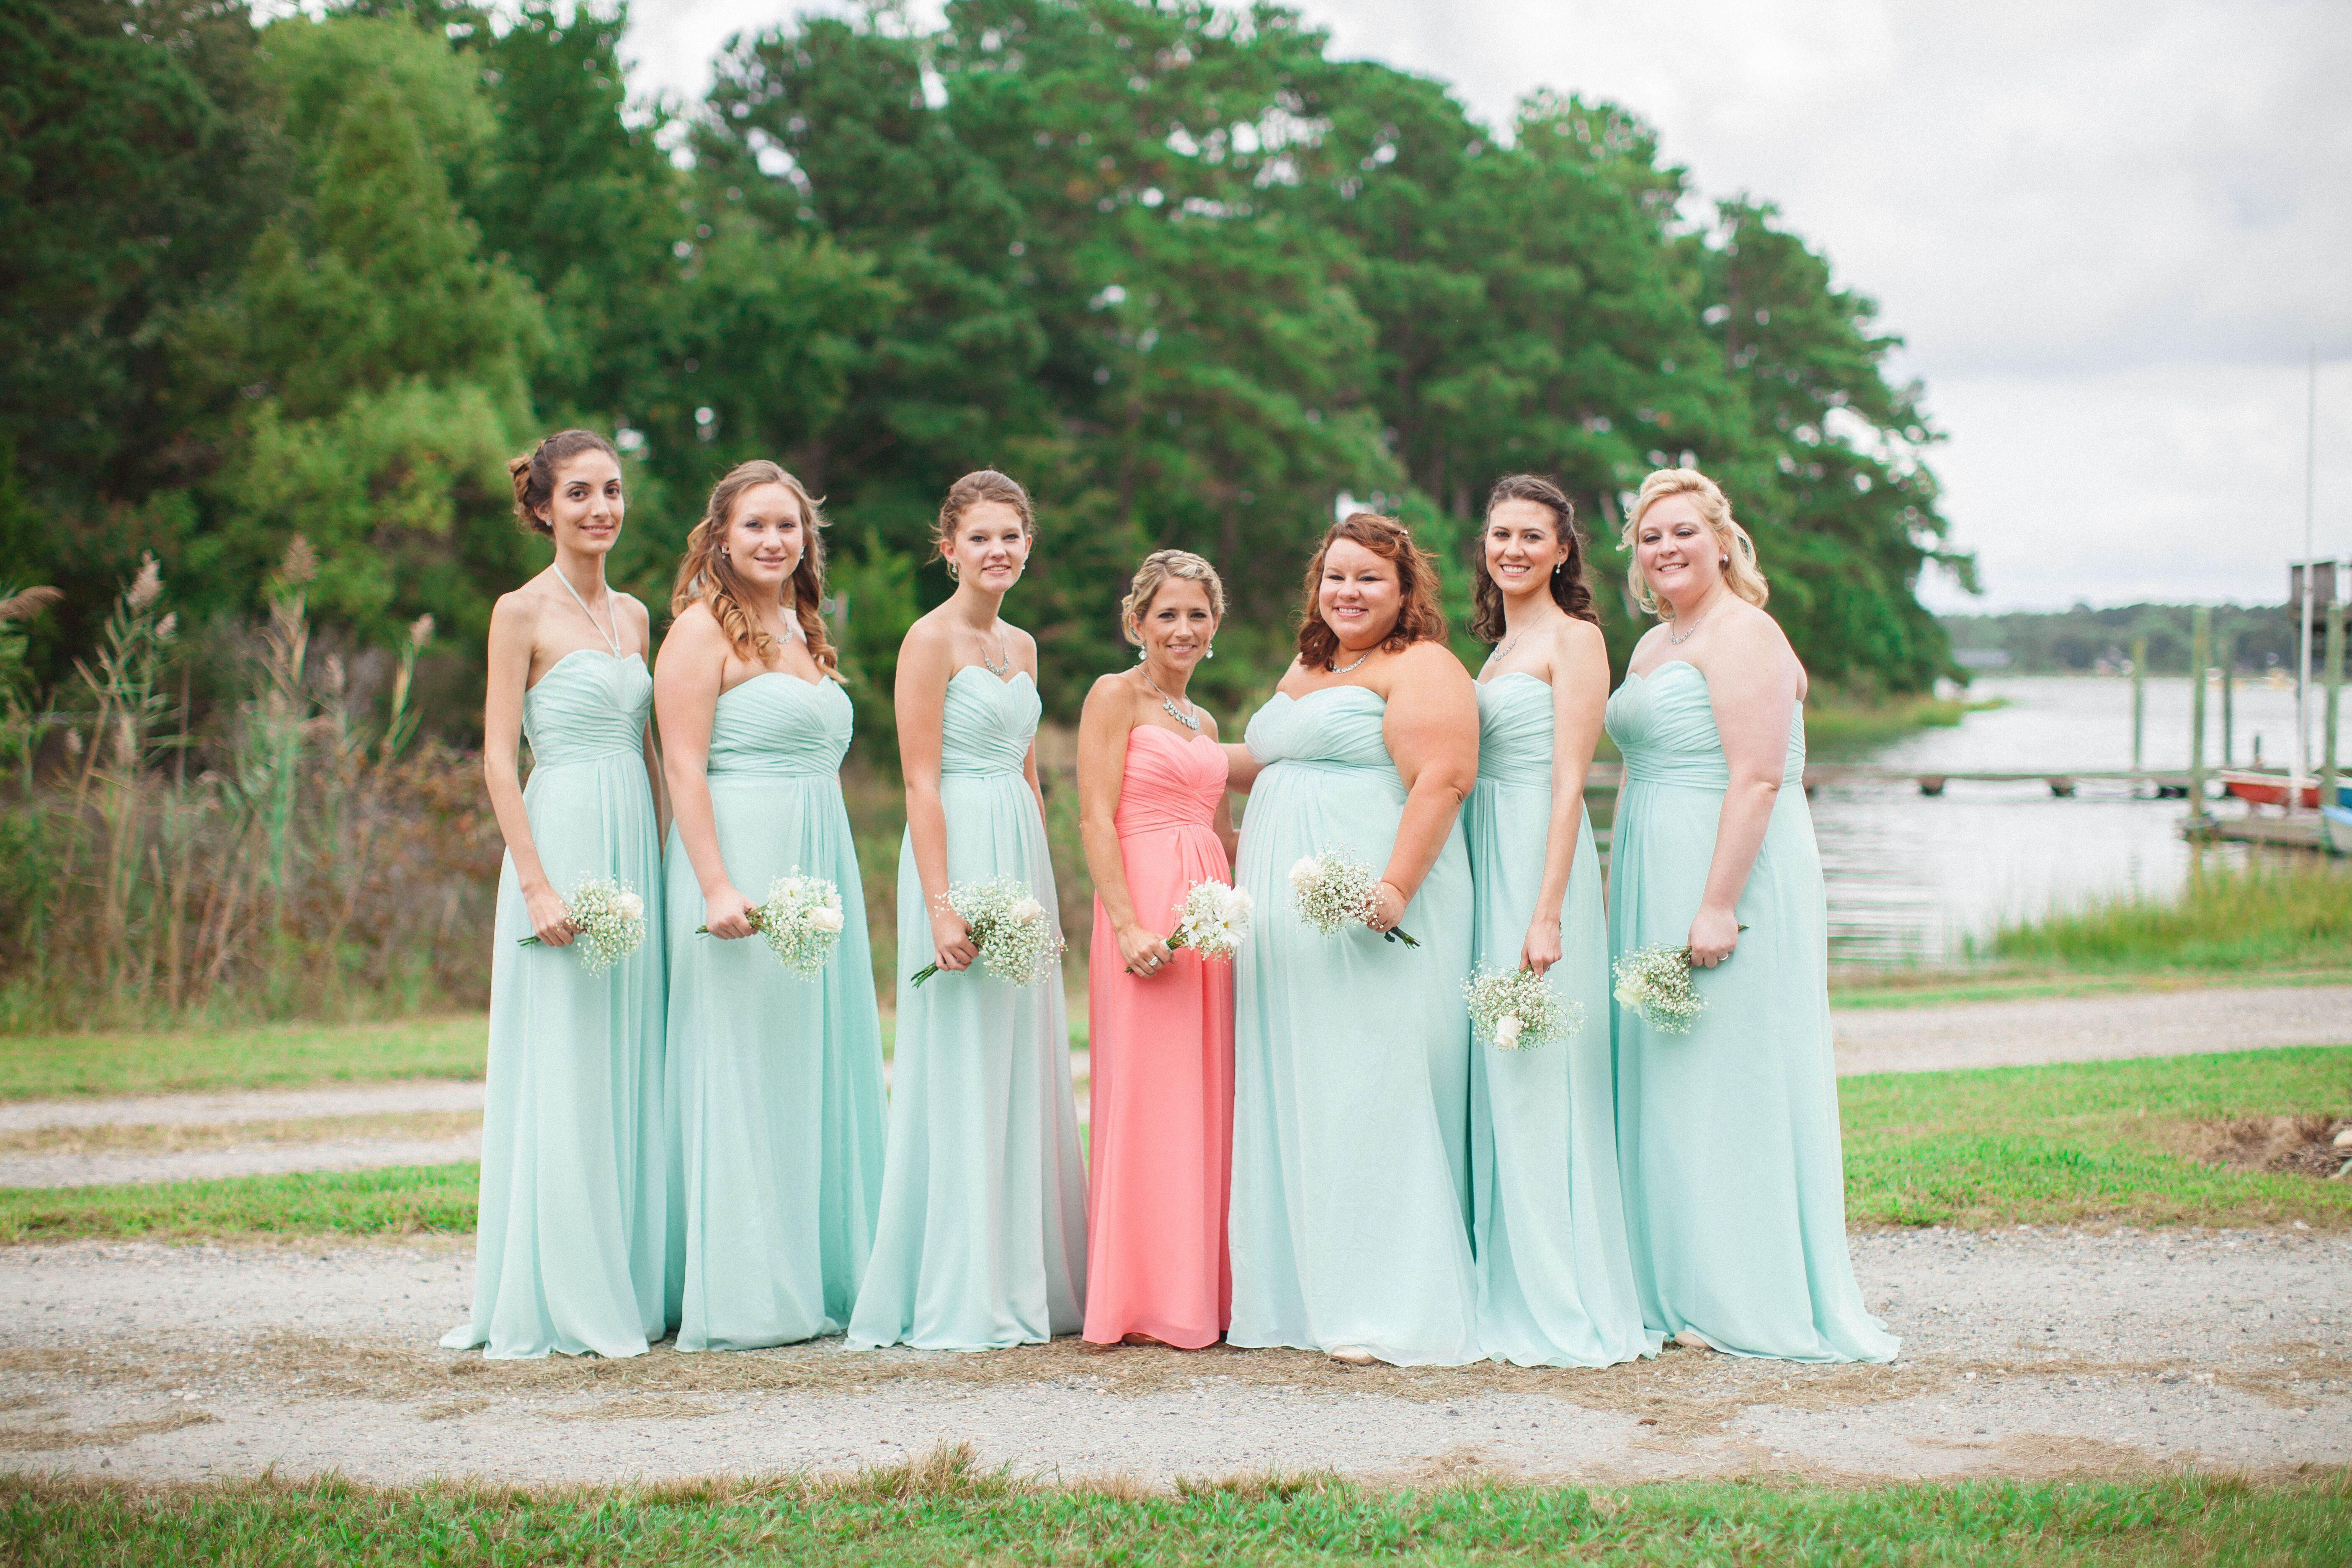 Bridesmaids In Mint Maid Of Honor In Coral